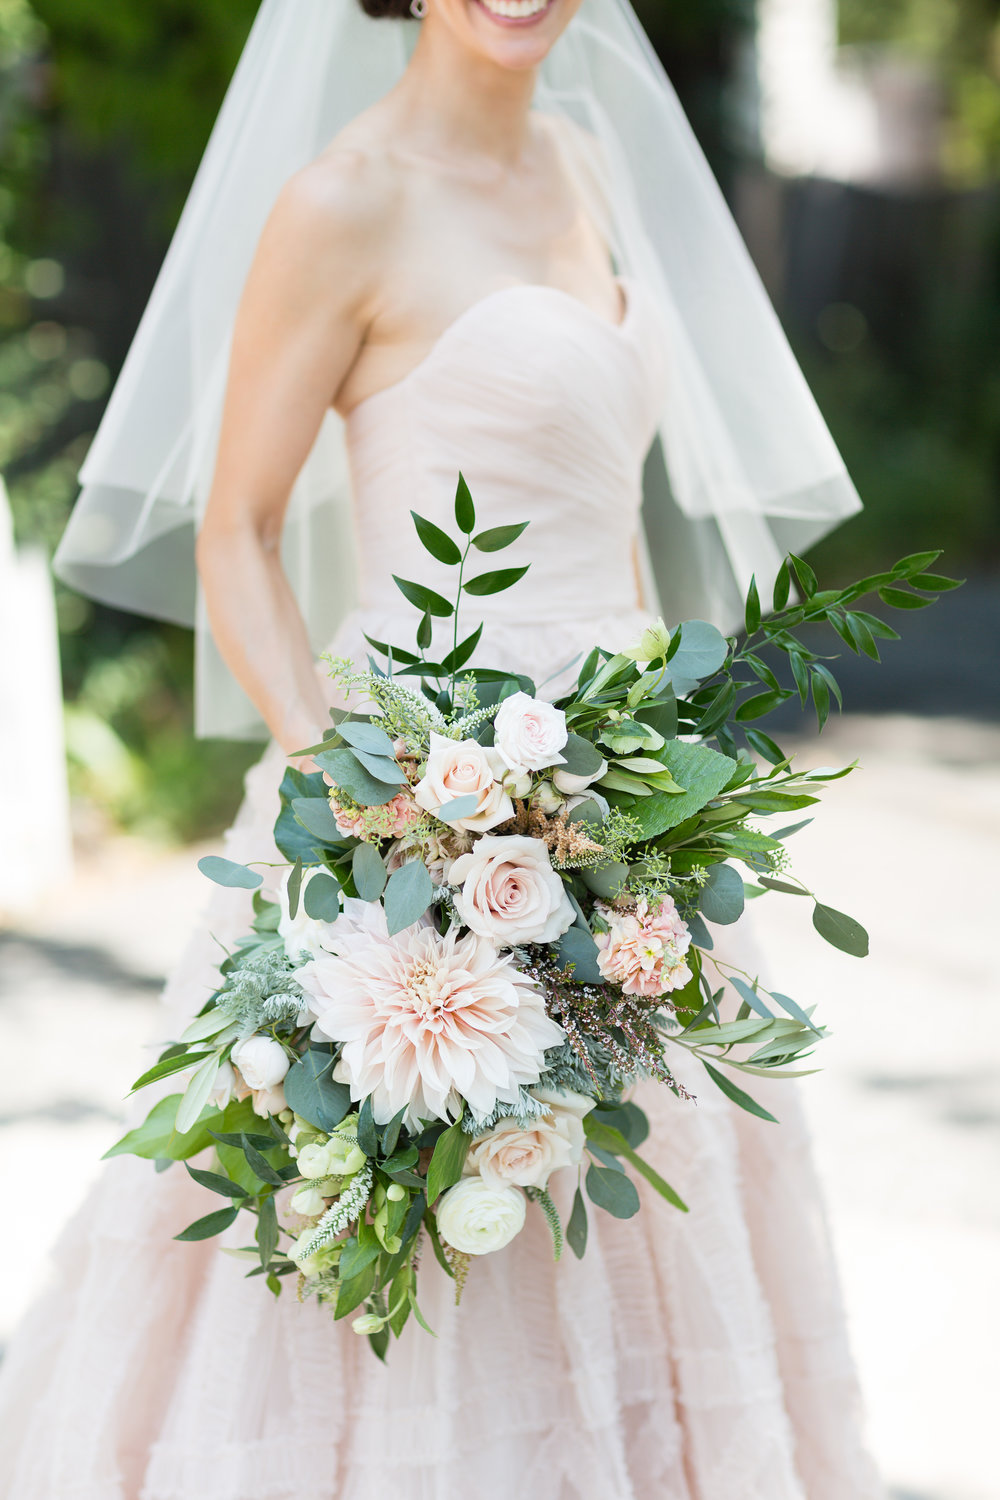 Wedding Florals by Bees, Leaves, N' Love